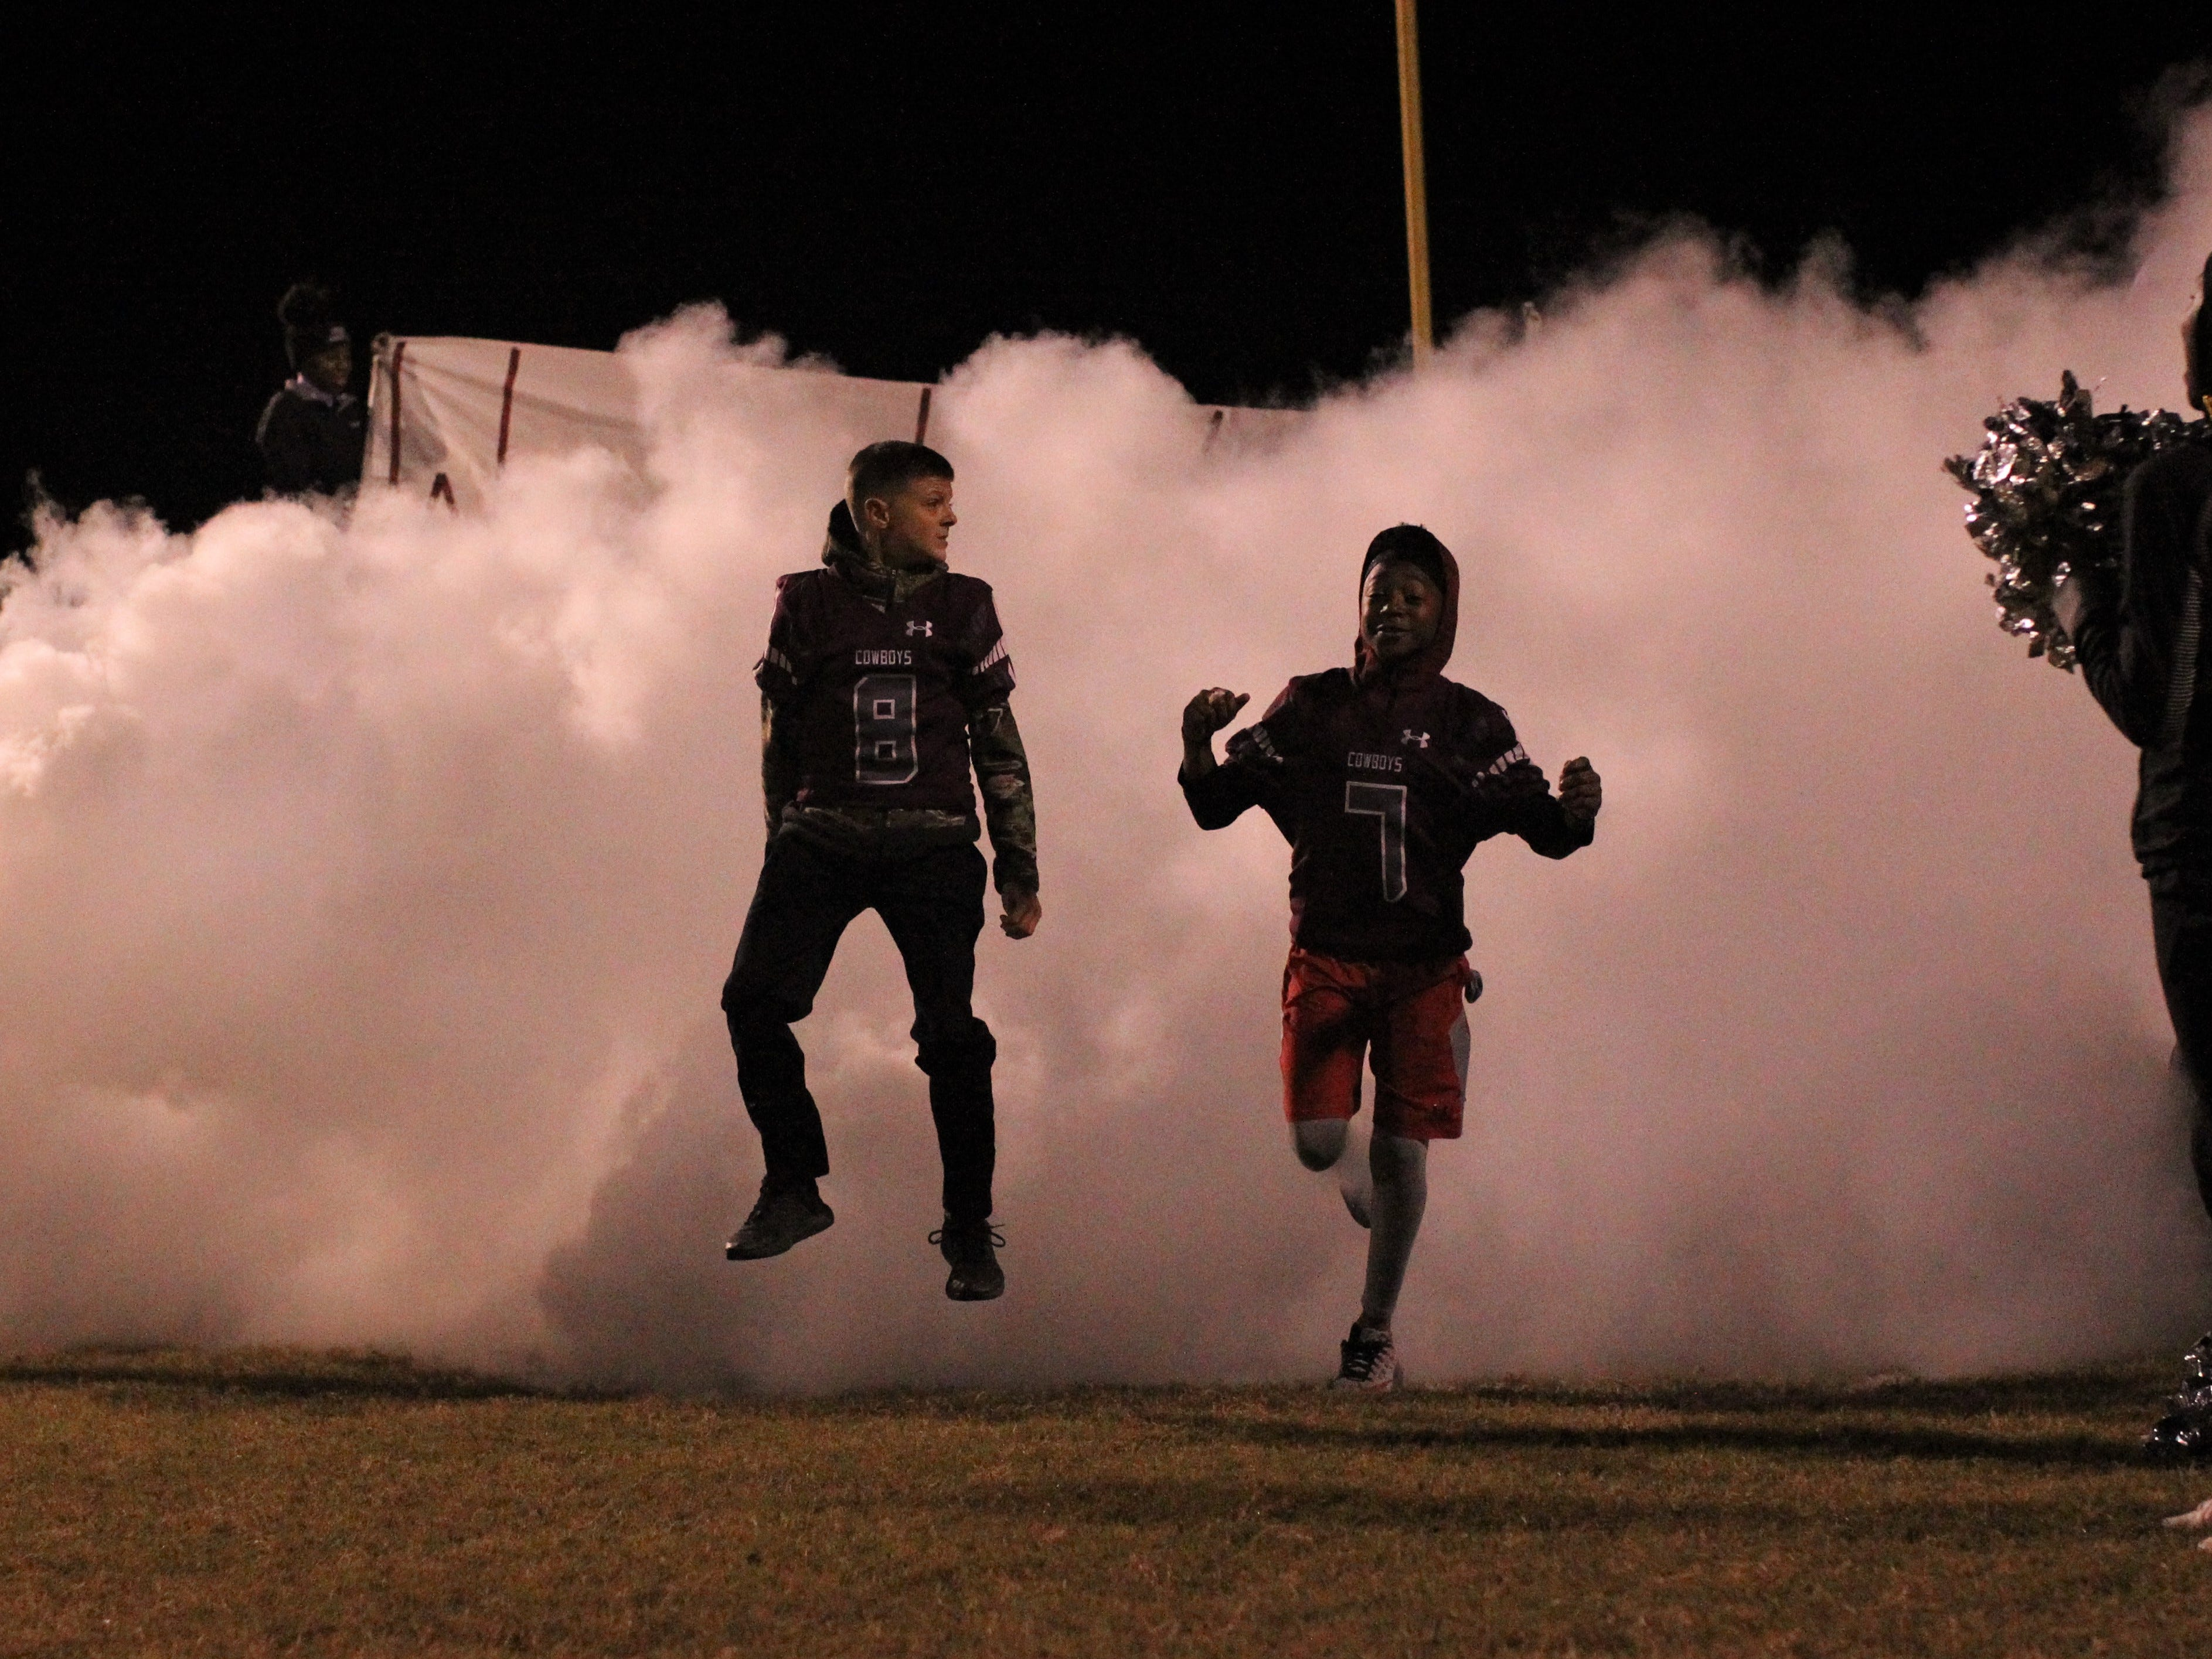 Madison County beat Chiefland 49-14 in a Region 3-1A final at Boot Hill Stadium on Friday, Nov. 23, 2018.